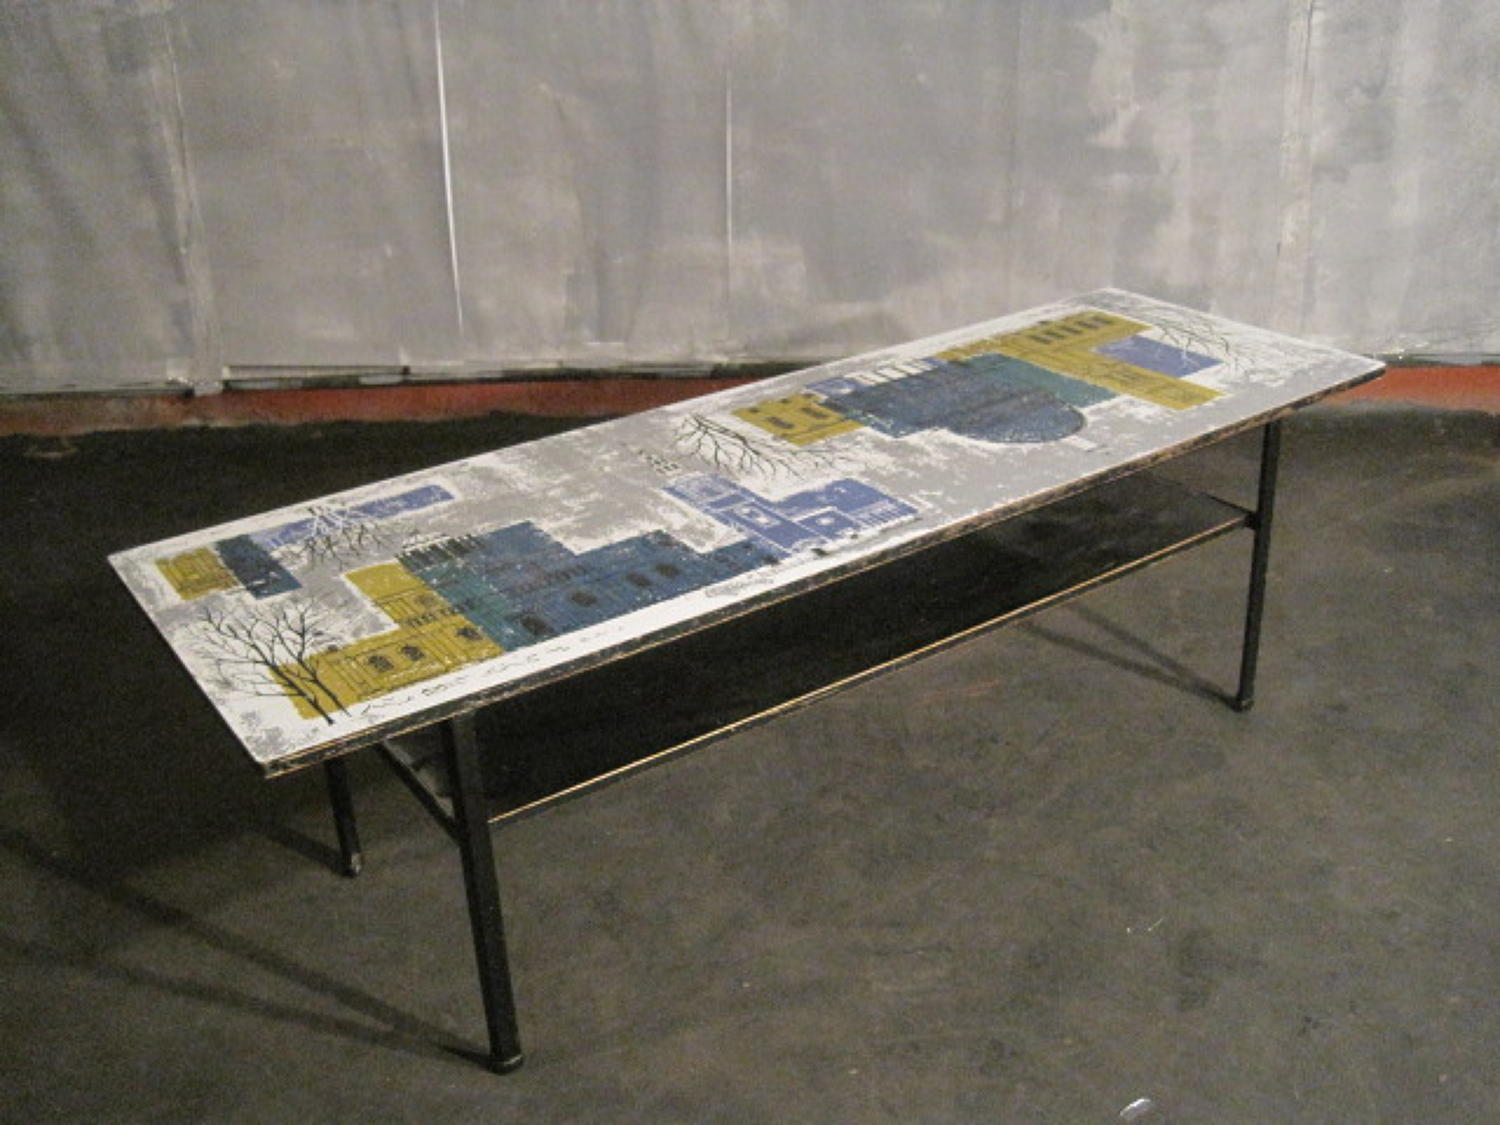 1960s formica coffee table by John Piper